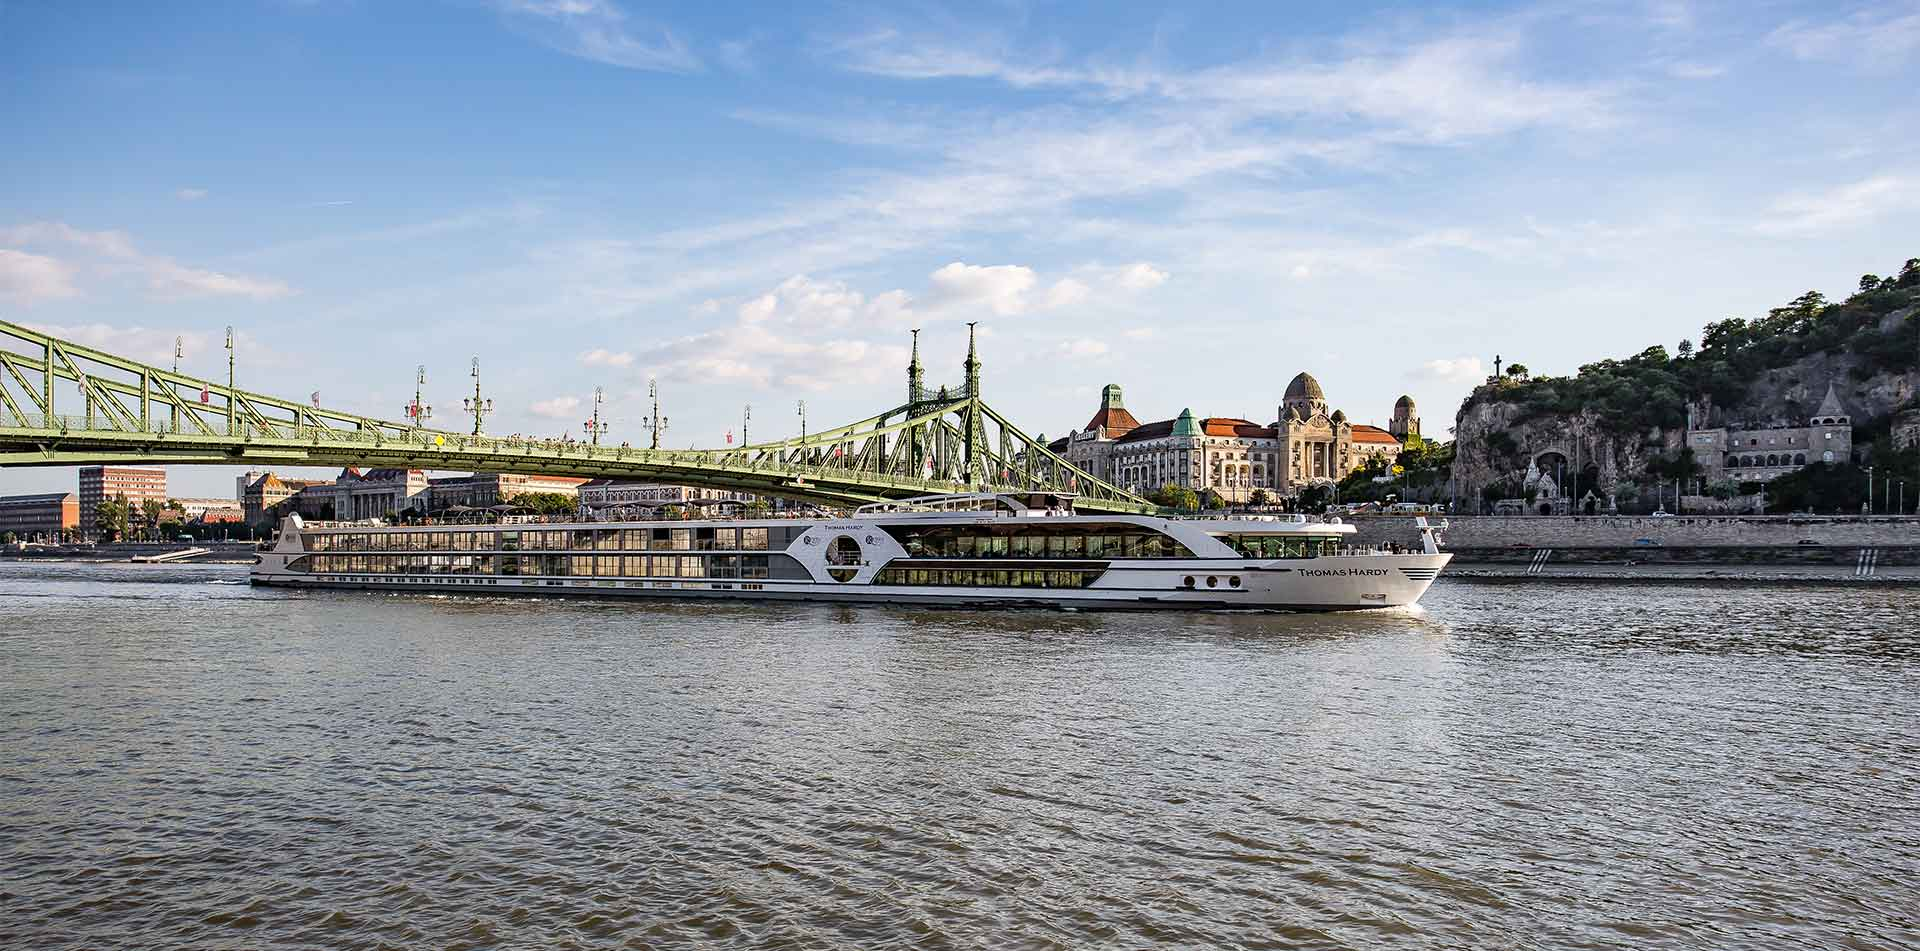 Europe Czech Republic Riviera River Cruise ship MS Thomas Hardy on the Danube River - luxury vacation destinations